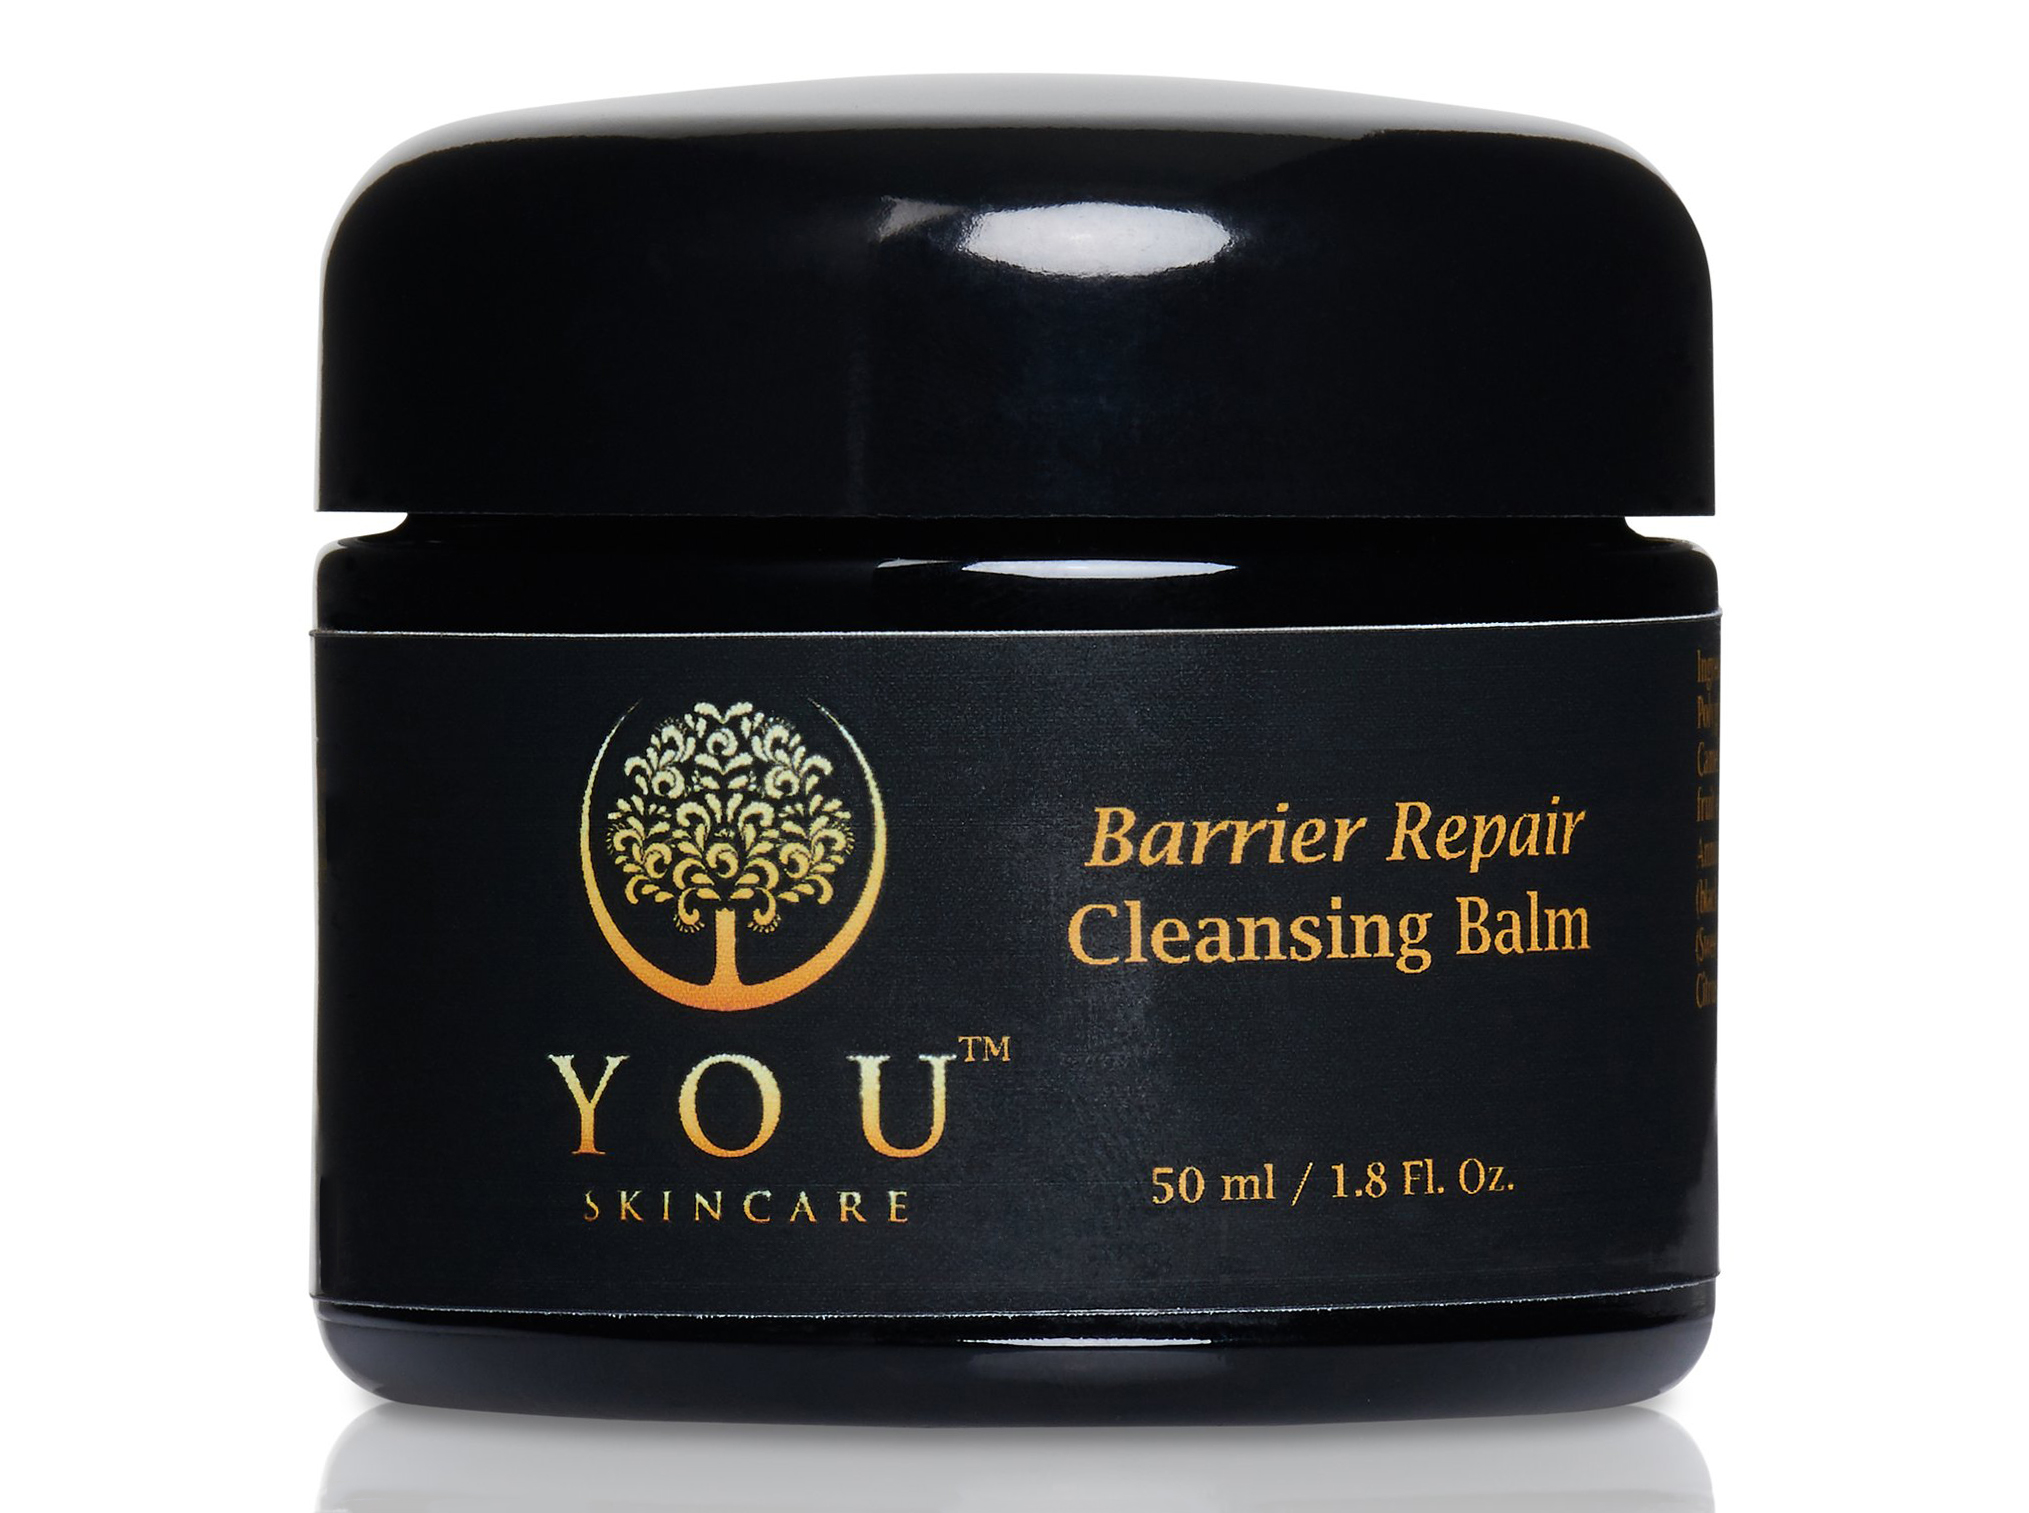 YOU Skincare Barrier Repair Cleansing Balm